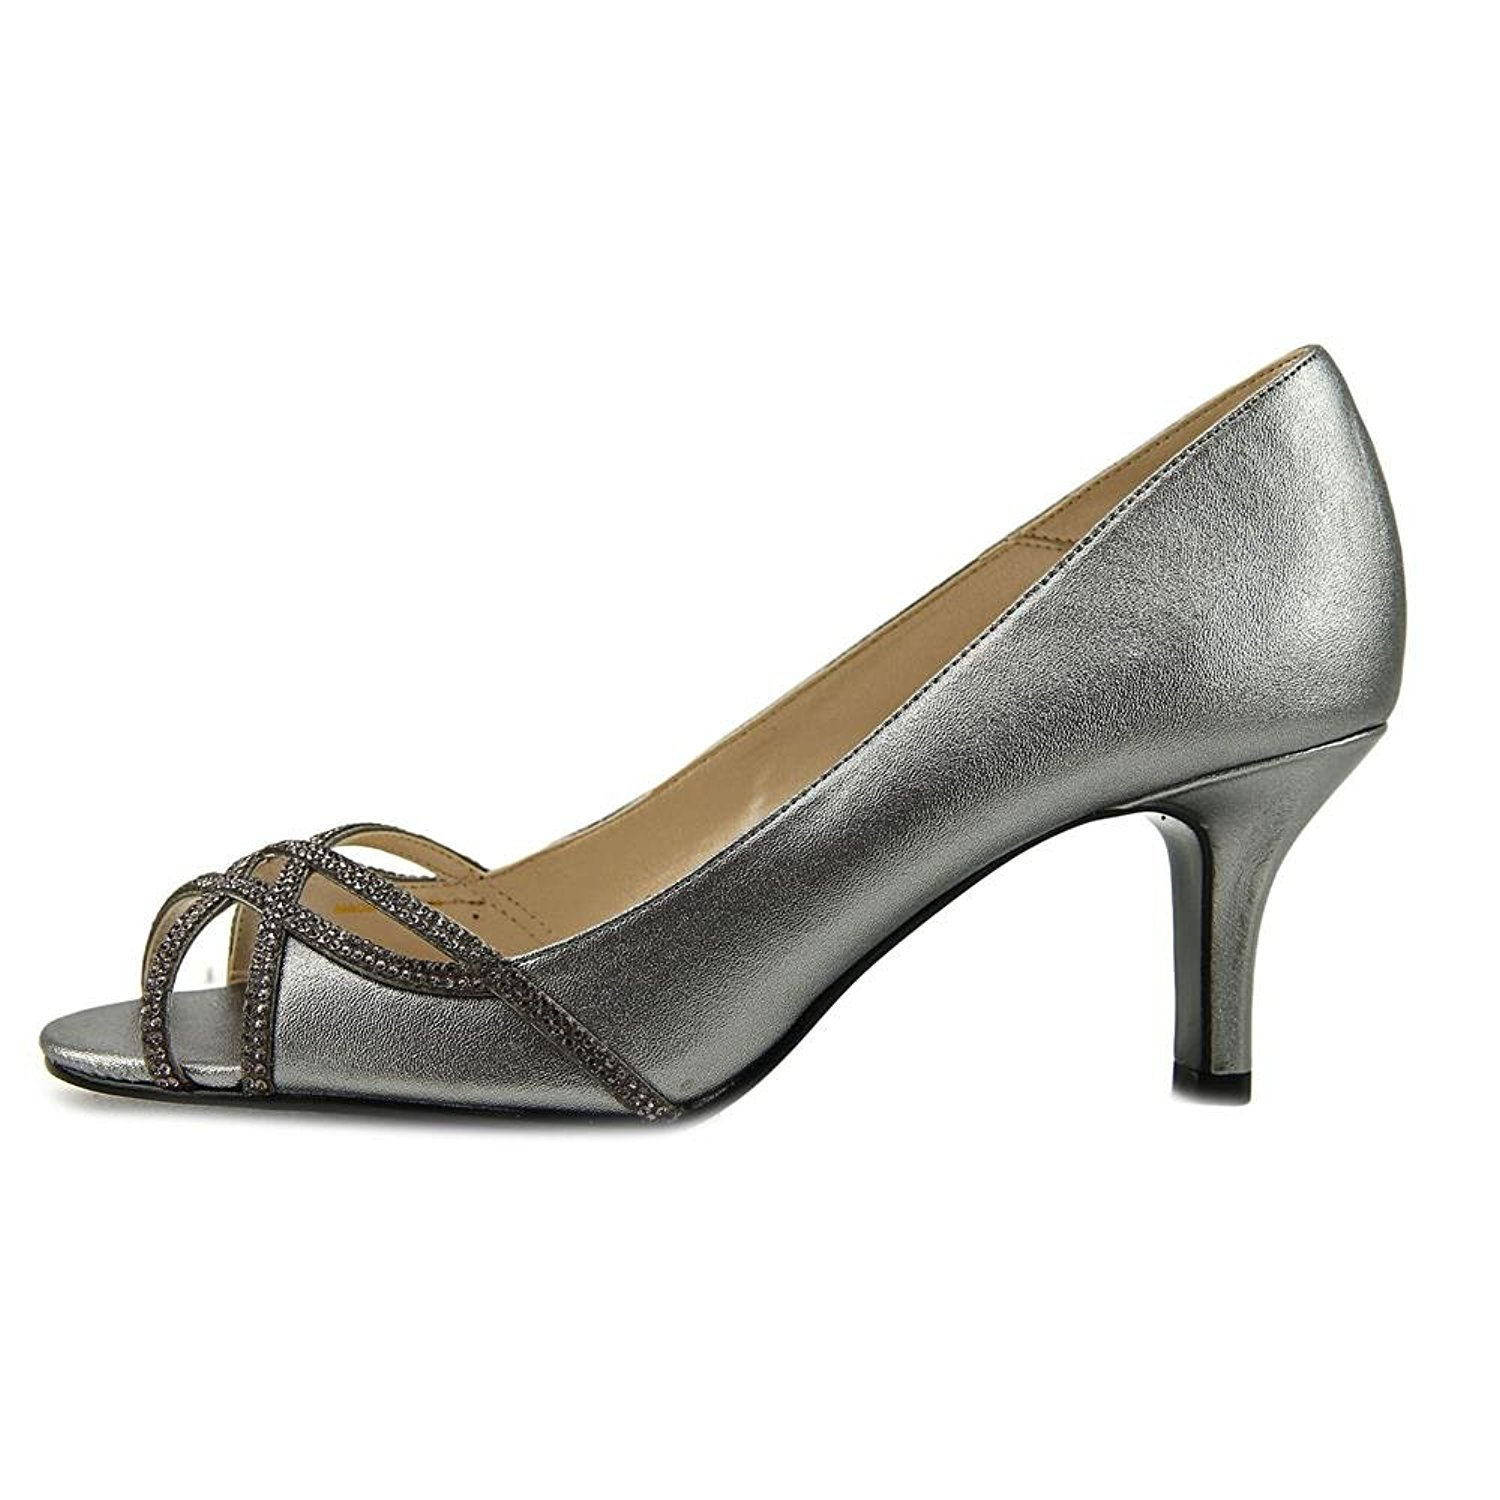 2e35c34df4 Caparros Womens Eliza Peep Toe Classic Pumps, Pewter Metallic, Size ...